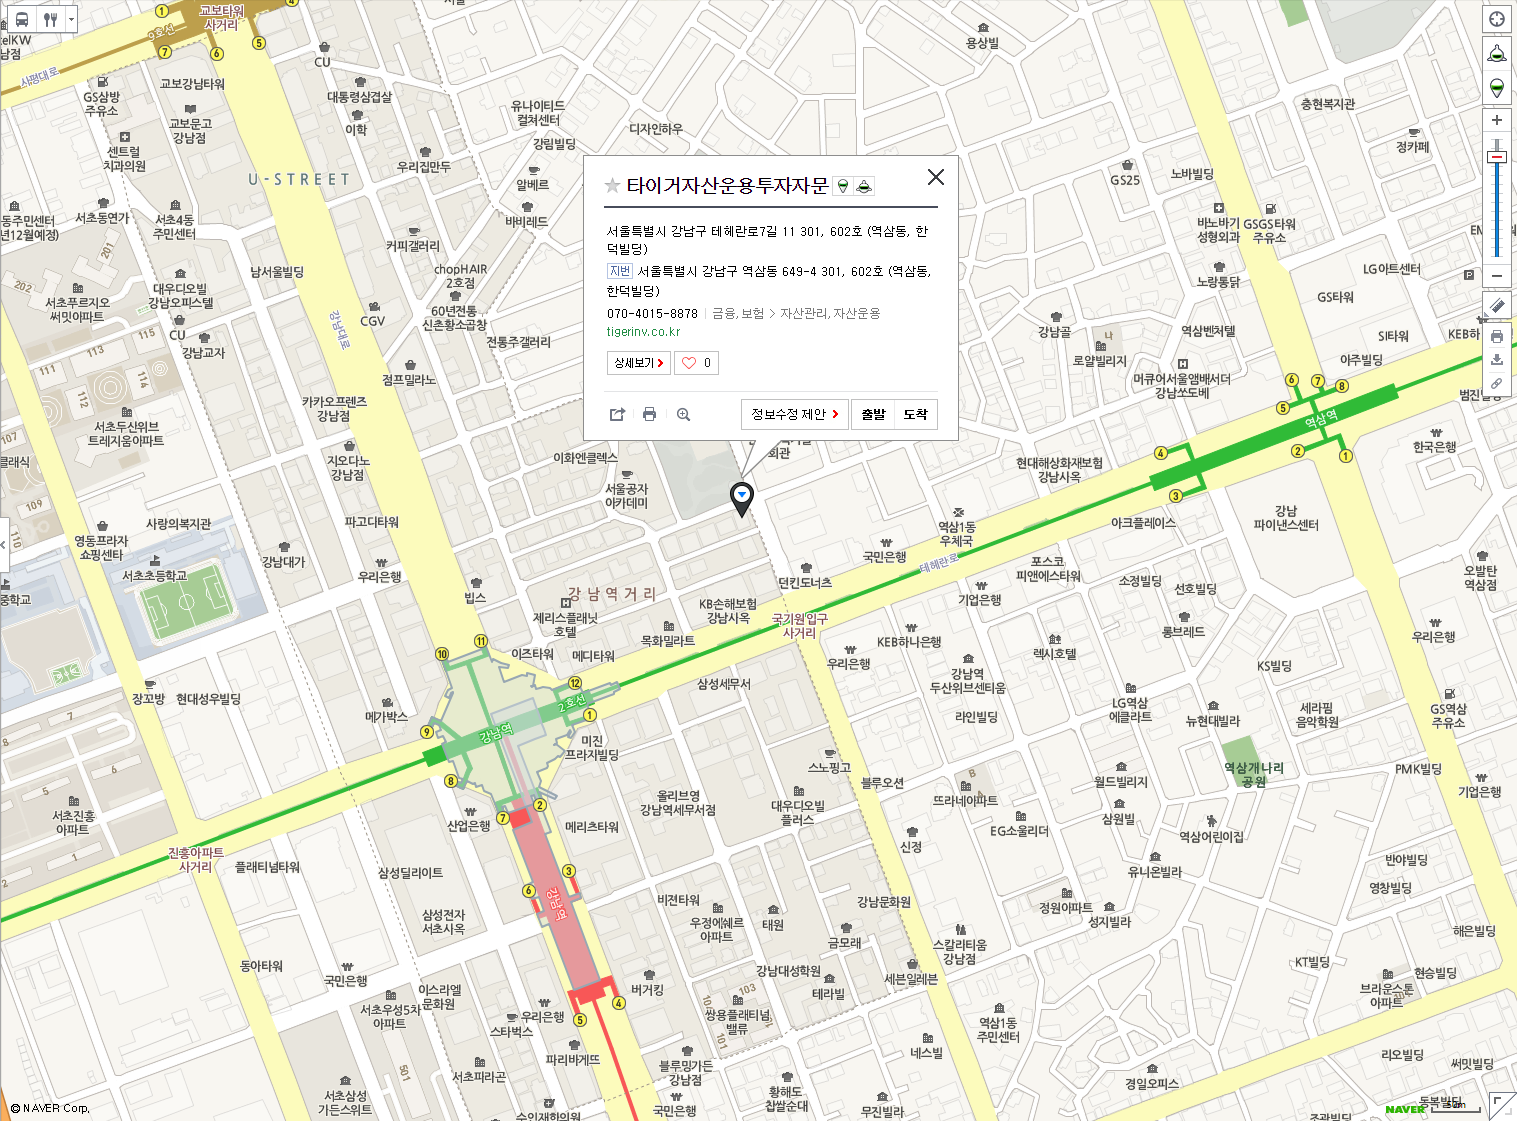 https://map.naver.com/?query=&searchCoord=&tab=1&lng=3f1a3ae5bdbdd05a56f5e4cfff1fef46&mapMode=0&mpx=2651af7ed8fe4d206a66409043c5c40192d81bc9a7b2faec59e6e3d57e5cabfe390cd3d6c10854d48ff08cd02ca38e9b&pinId=1986062657&lat=d40b55a1806f11a14d0d82e58f39e403&dlevel=12&enc=b64&__pinOnly=false&menu=location&__fromRestorer=true&pinType=site